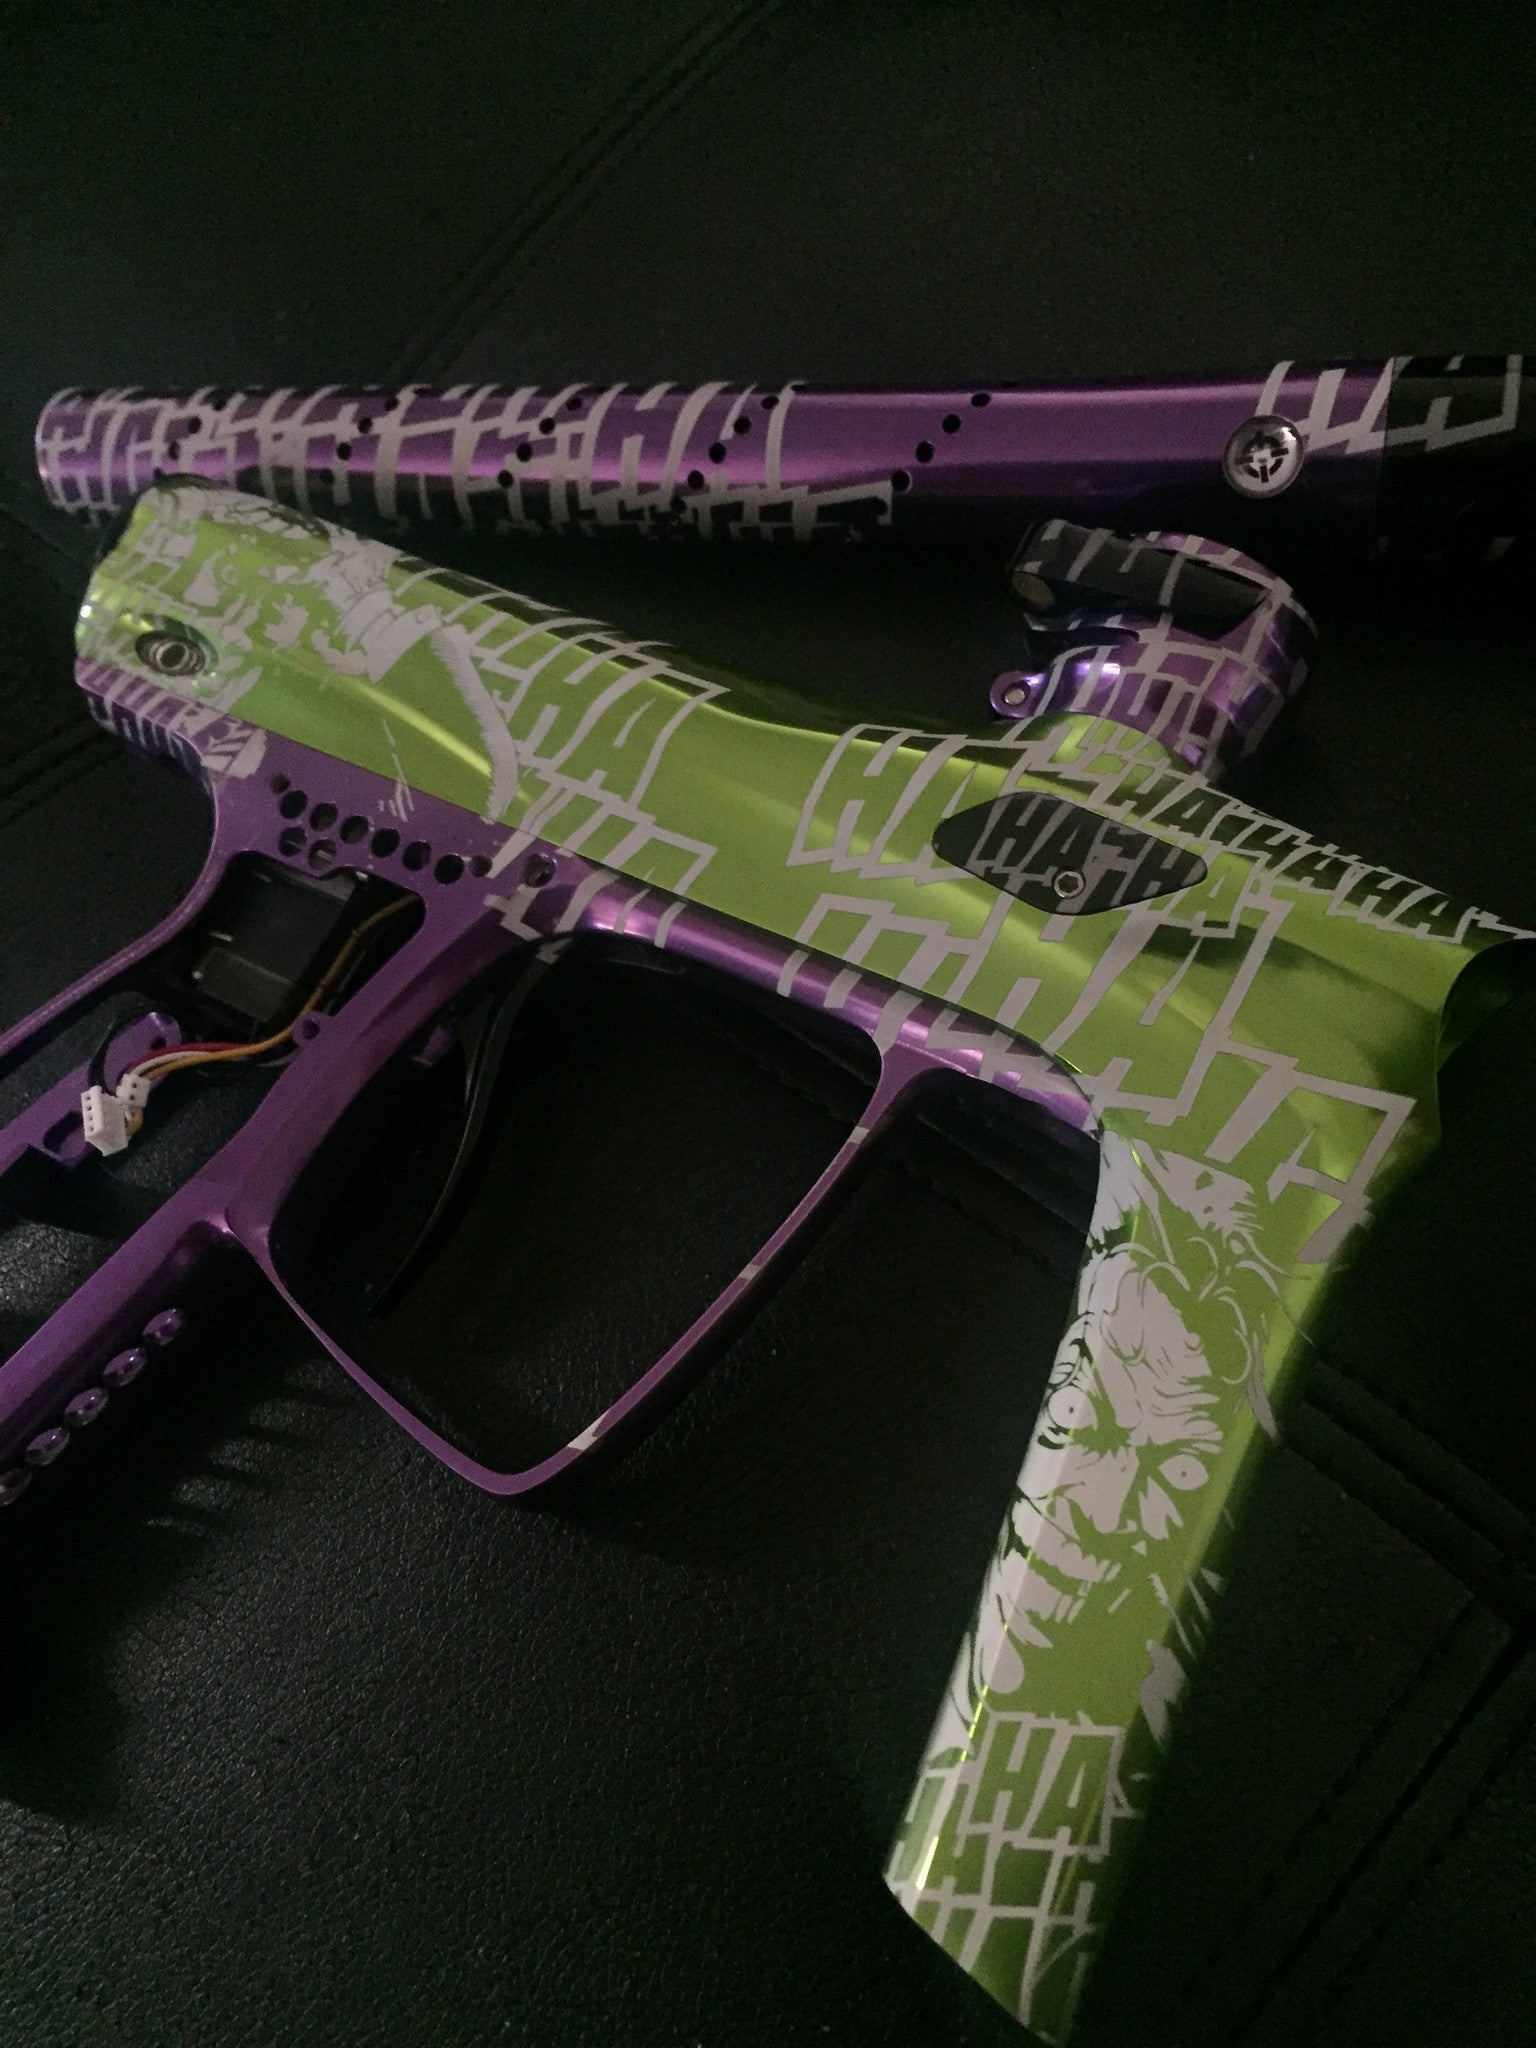 Joker Paintball Marker Design